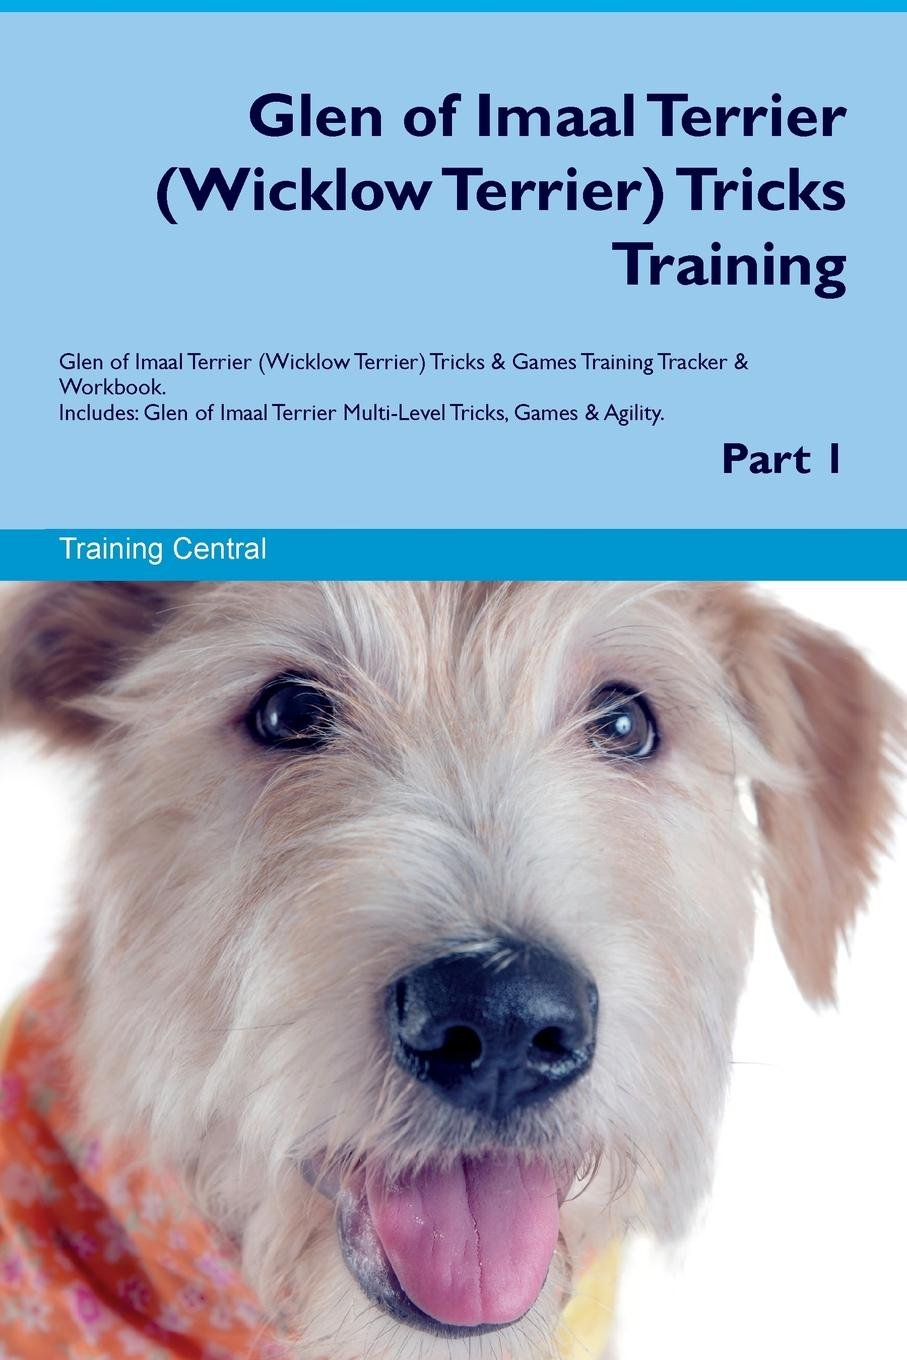 Glen of Imaal Terrier (Wicklow Terrier) Tricks Training Glen of Imaal Terrier (Wicklow Terrier) Tricks & Games Training Tracker & Workbook.  Includes: ... Multi-Level Tricks, Games & Agility. Part 1 ebook